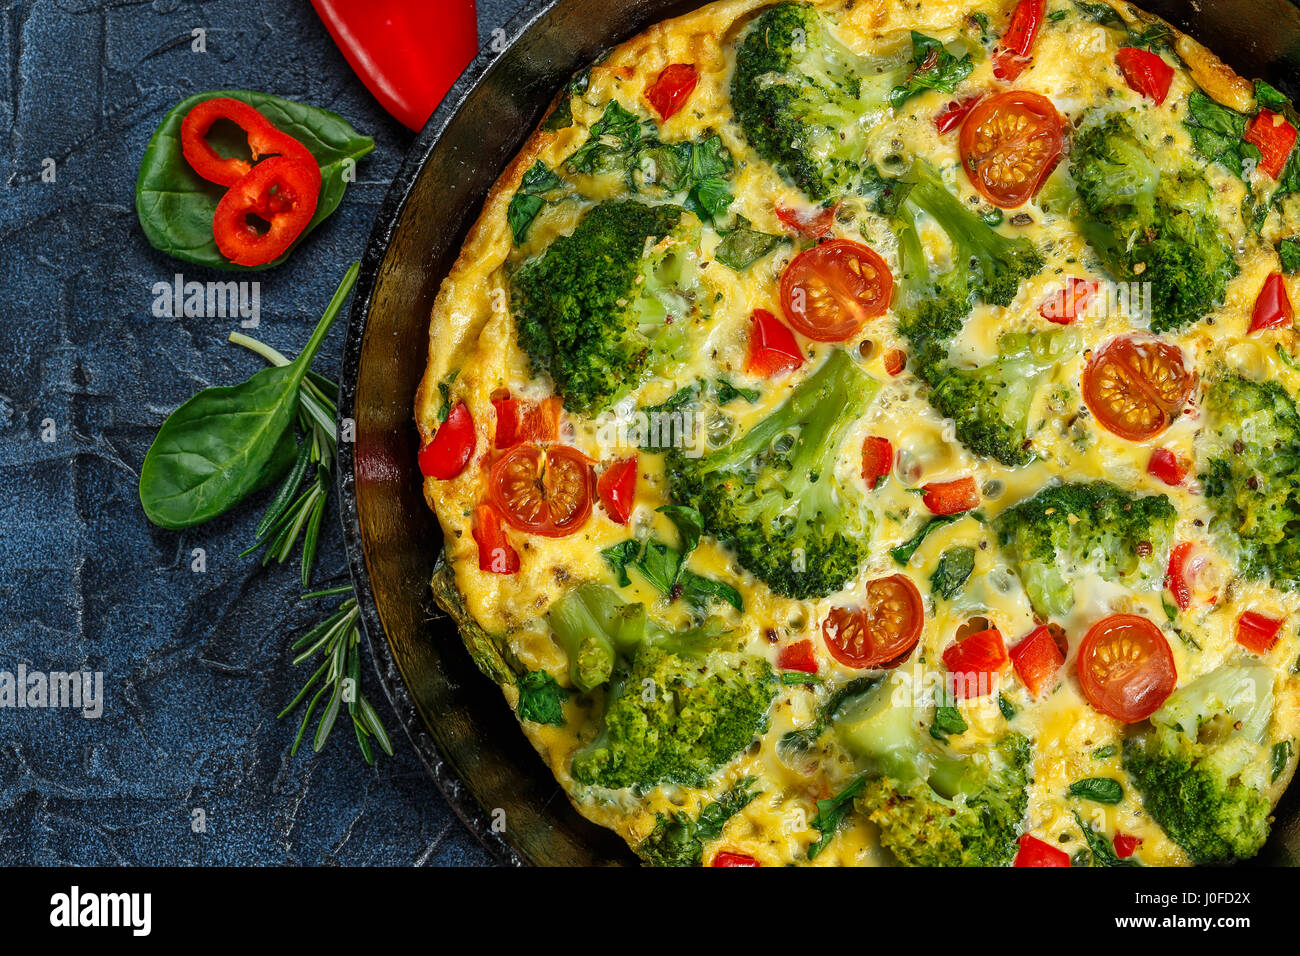 Frittata with broccoli, spinach, sweet peppers and tomatoes in iron skillet. Kind of Italian omelette with vegetables. - Stock Image